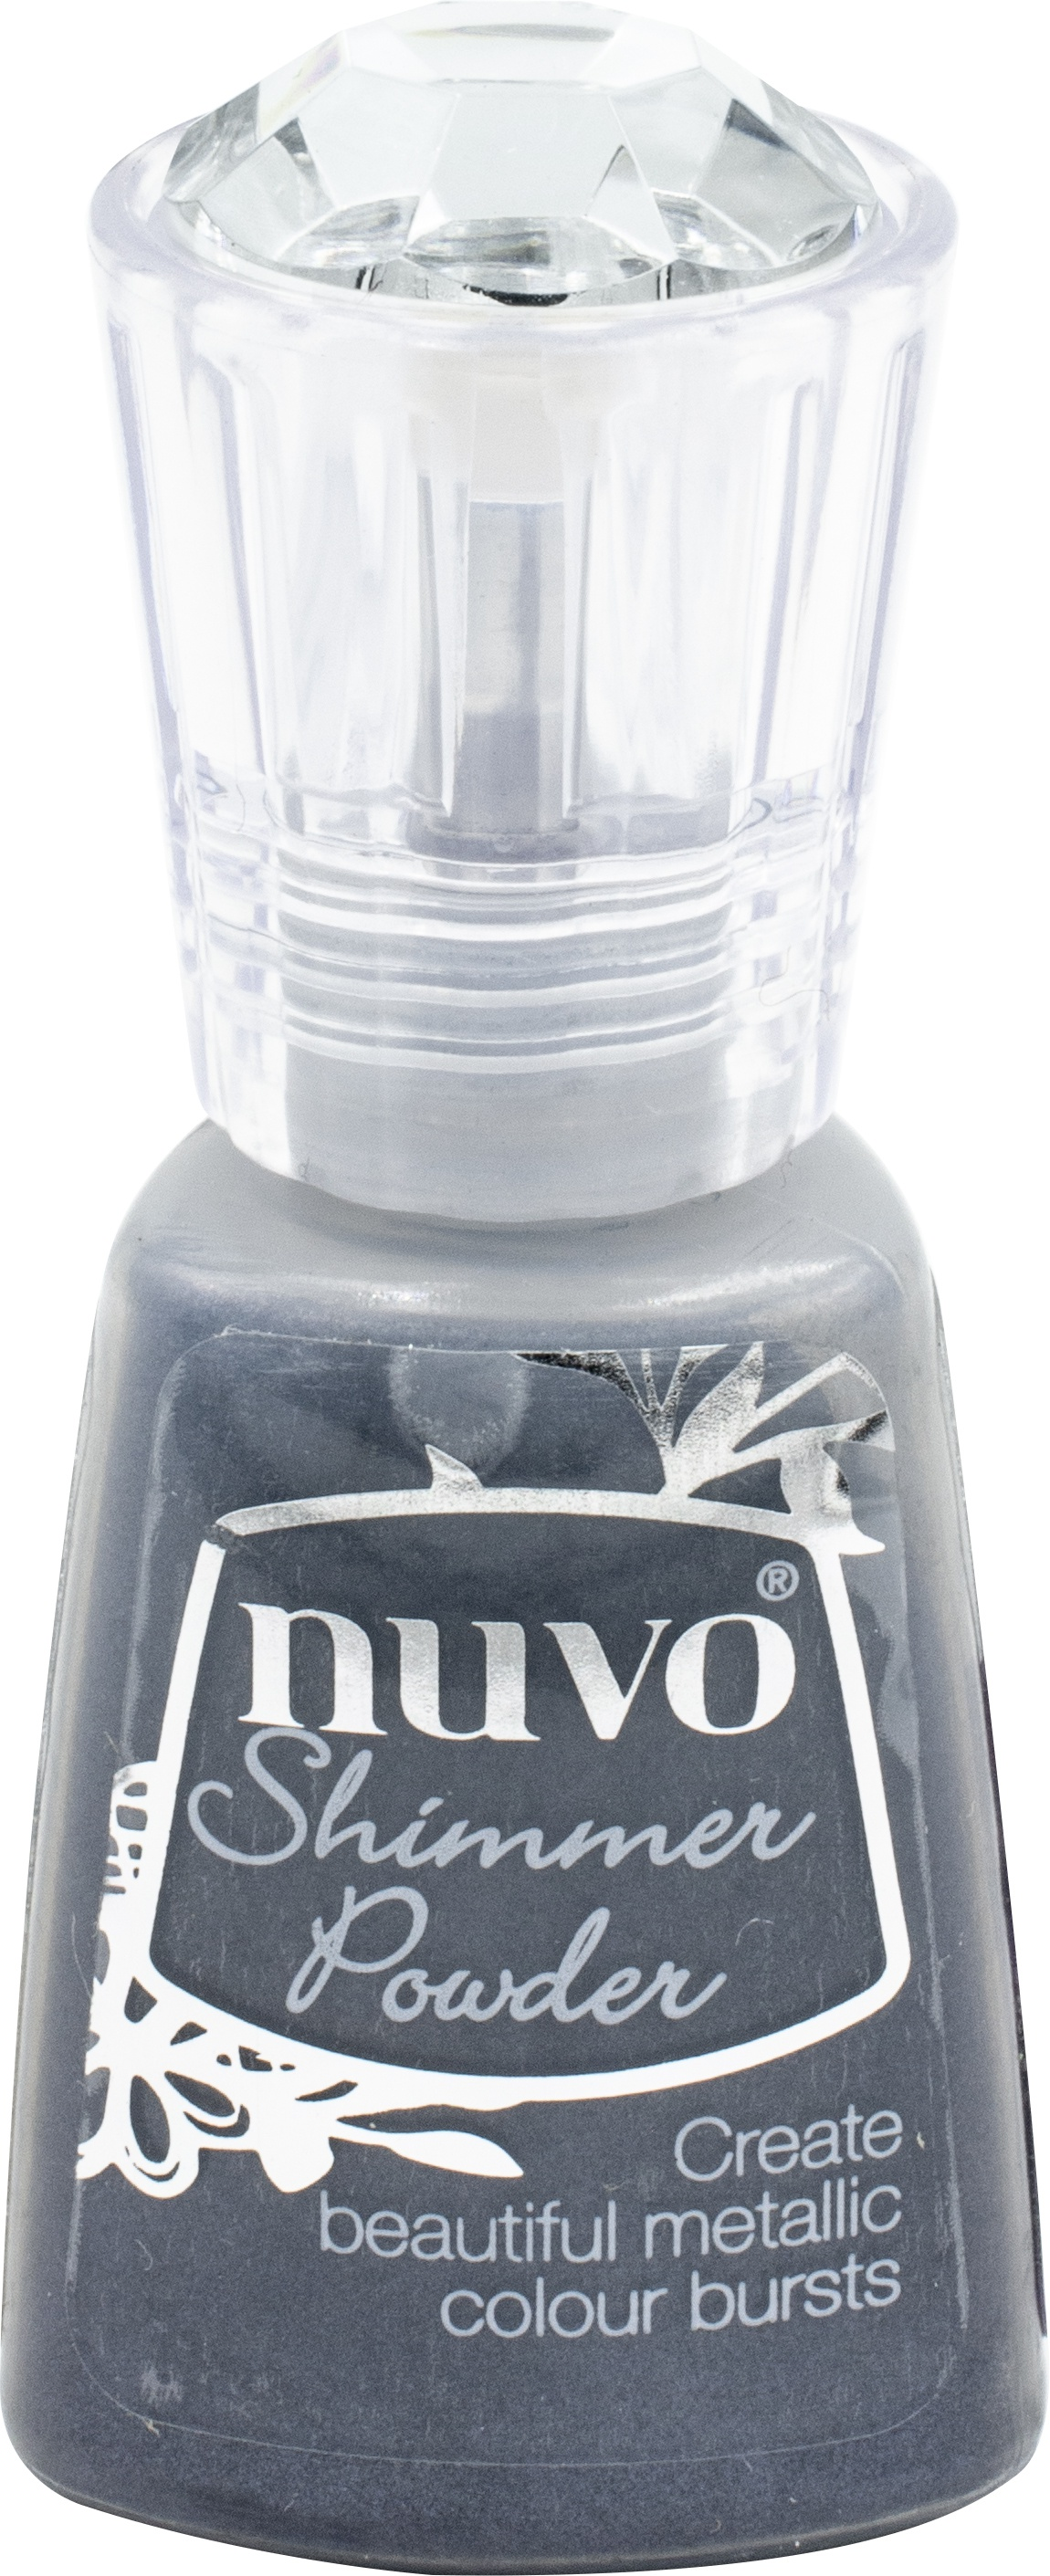 Nuvo Shimmer Powder-Meteorite Shower